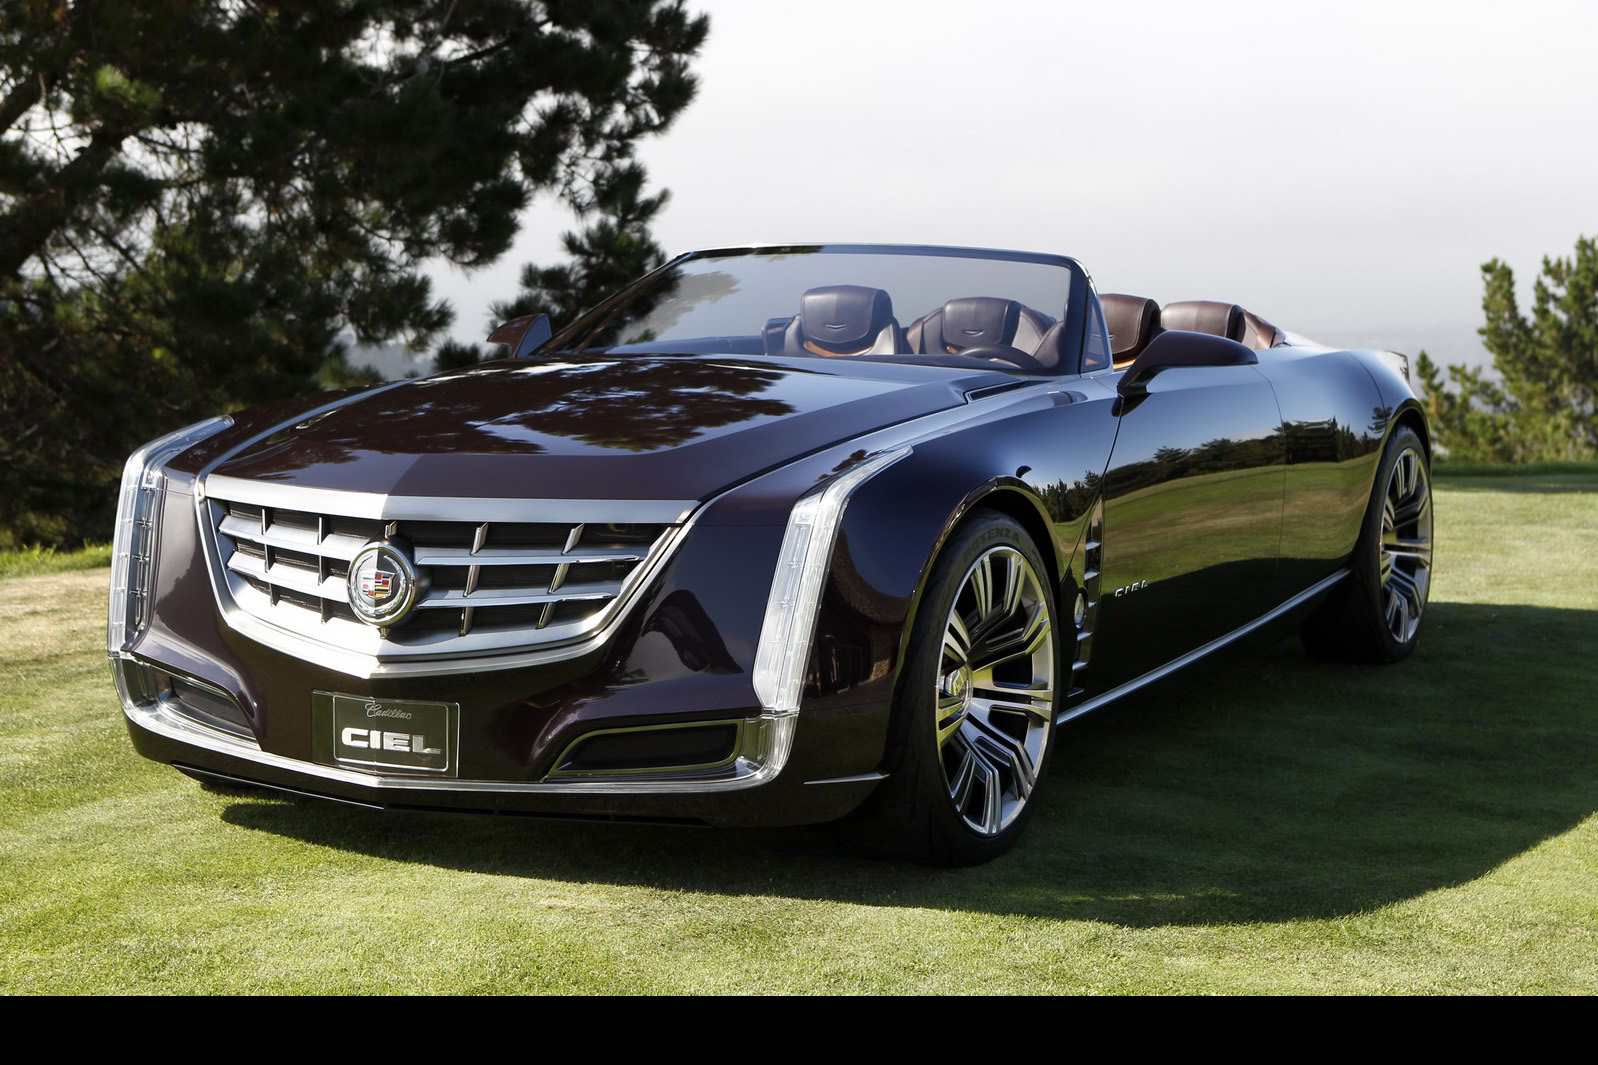 New Cadillac Ciel Cabrio 4-door Convertible Concept Wows Pebble Beach CrowdWallpapers HD